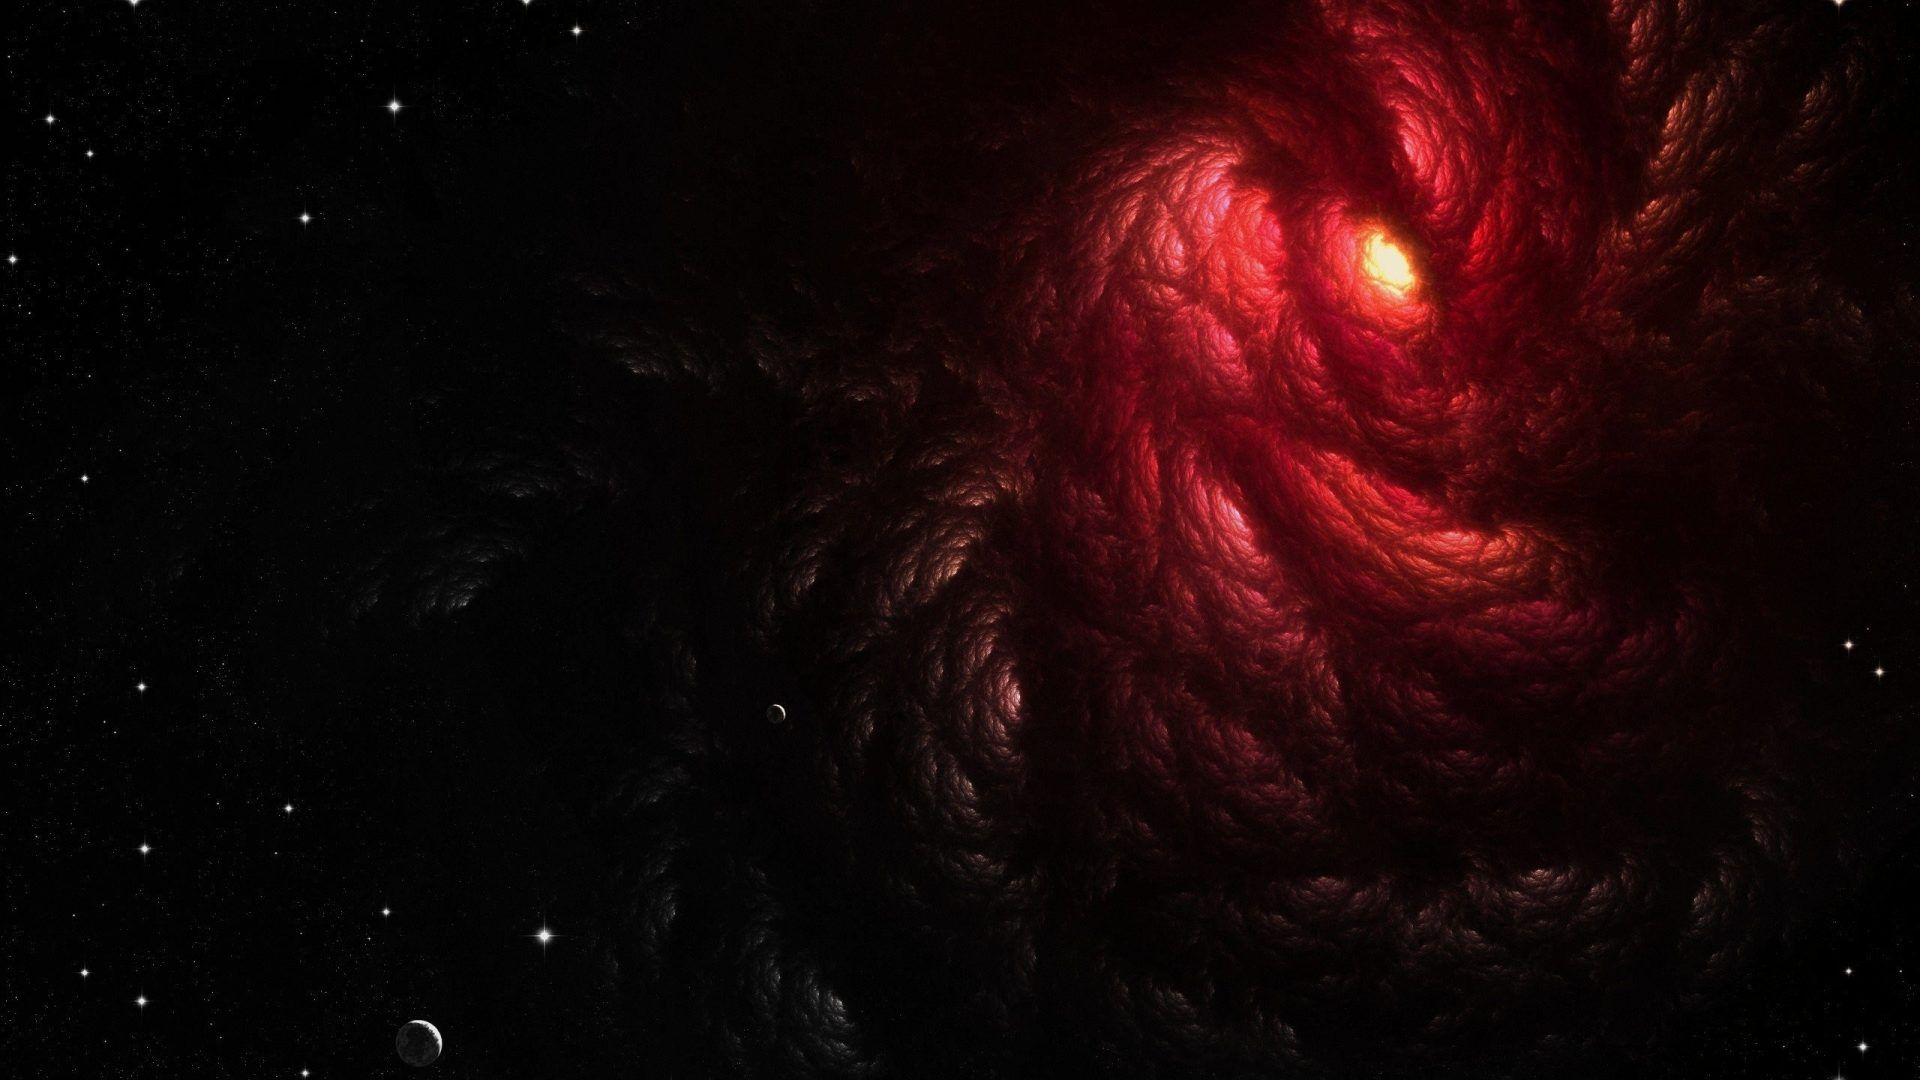 1920x1080 Wallpaper Outer Space Galaxy Planet Alone HD 907